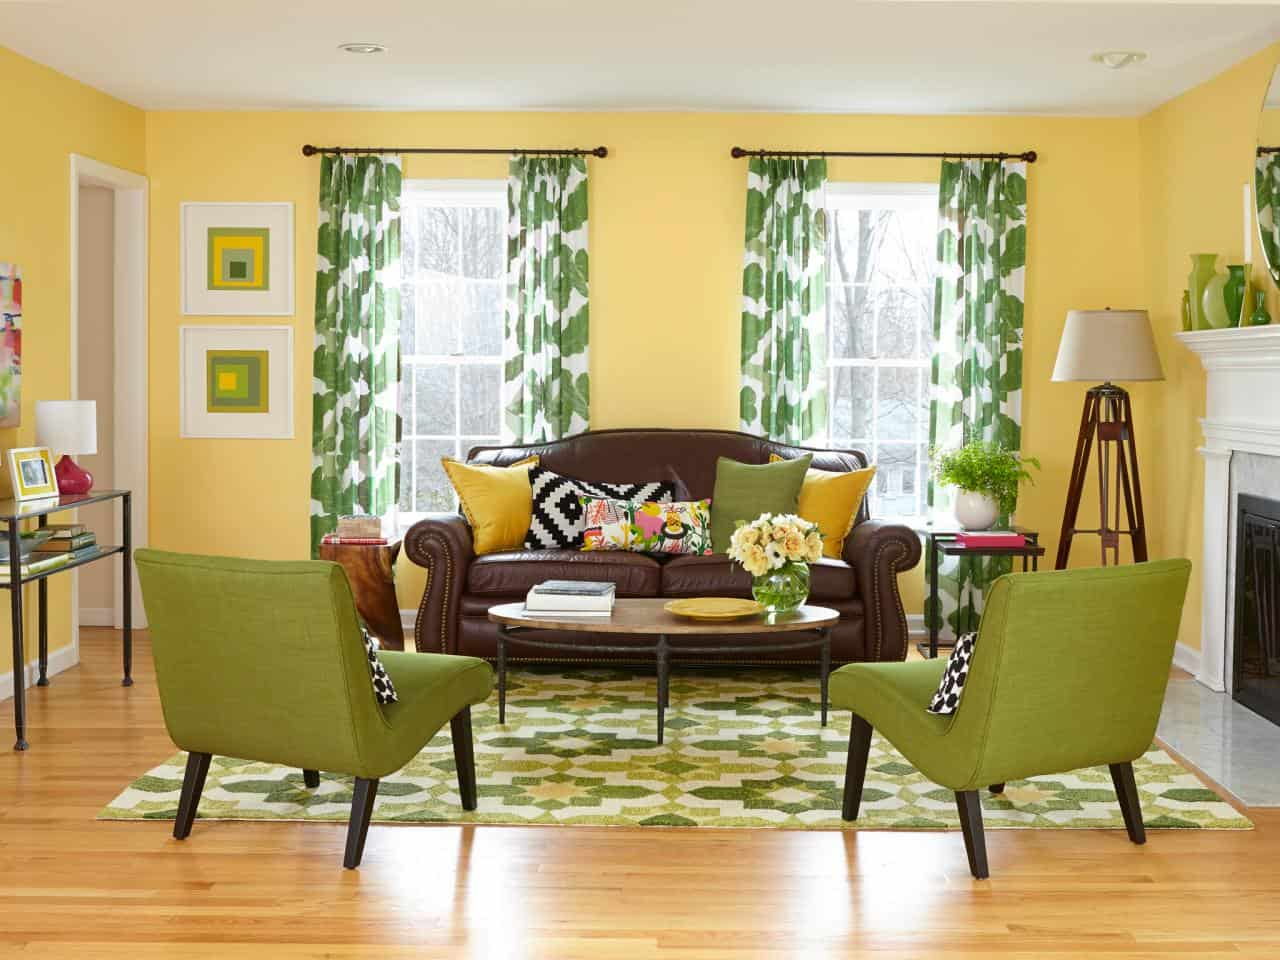 10 Shades Of Green That Will Make You Want To Incorporate Hues Into Your Home